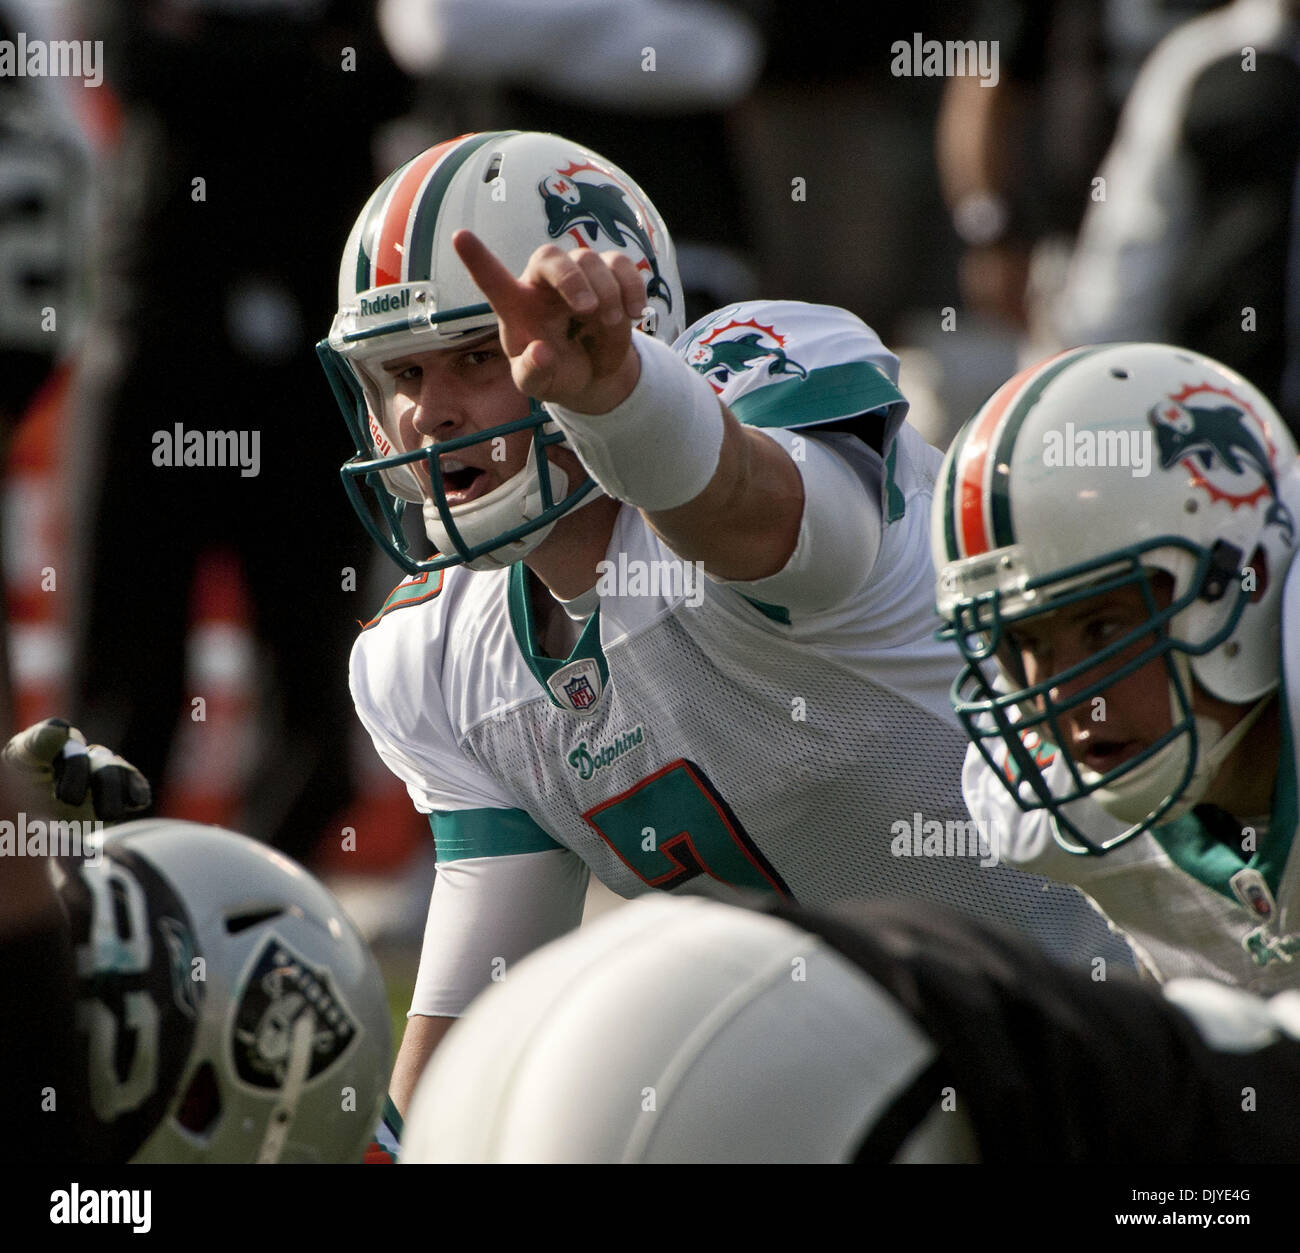 421ec17da Chad Henne Stock Photos & Chad Henne Stock Images - Alamy